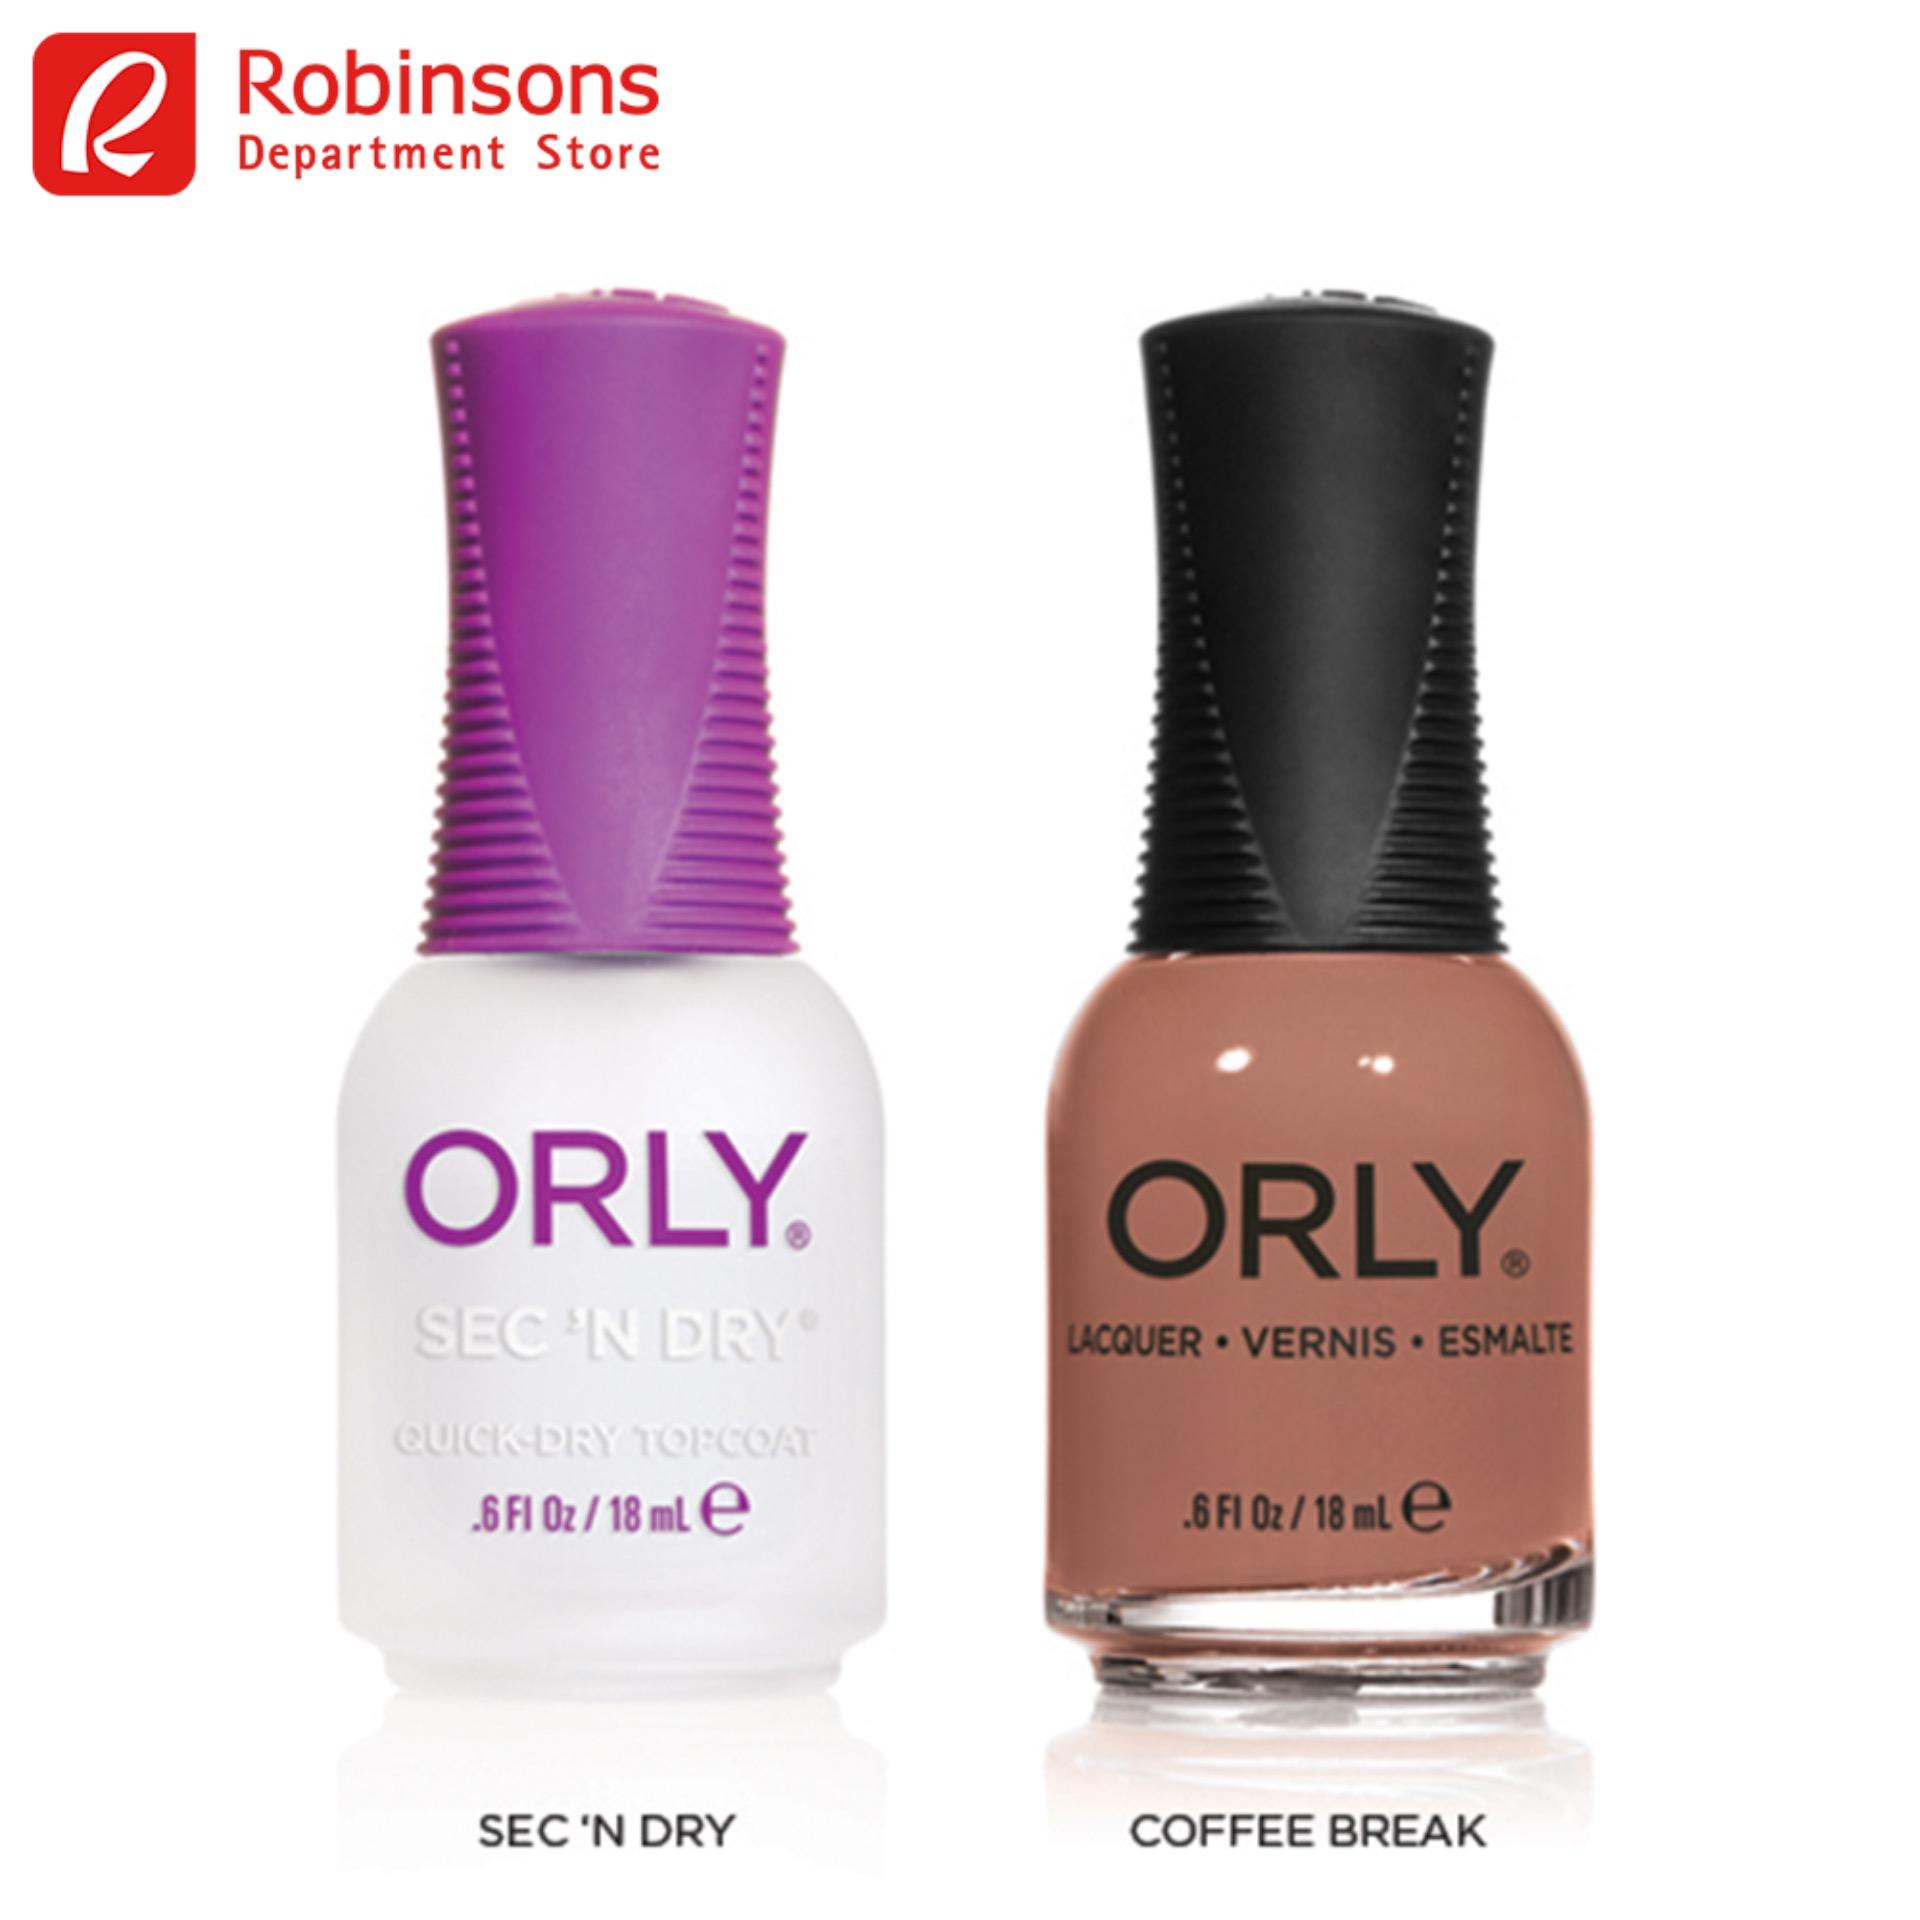 Orly Sec N Dry + Coffee Break By Robinsons Department Store.